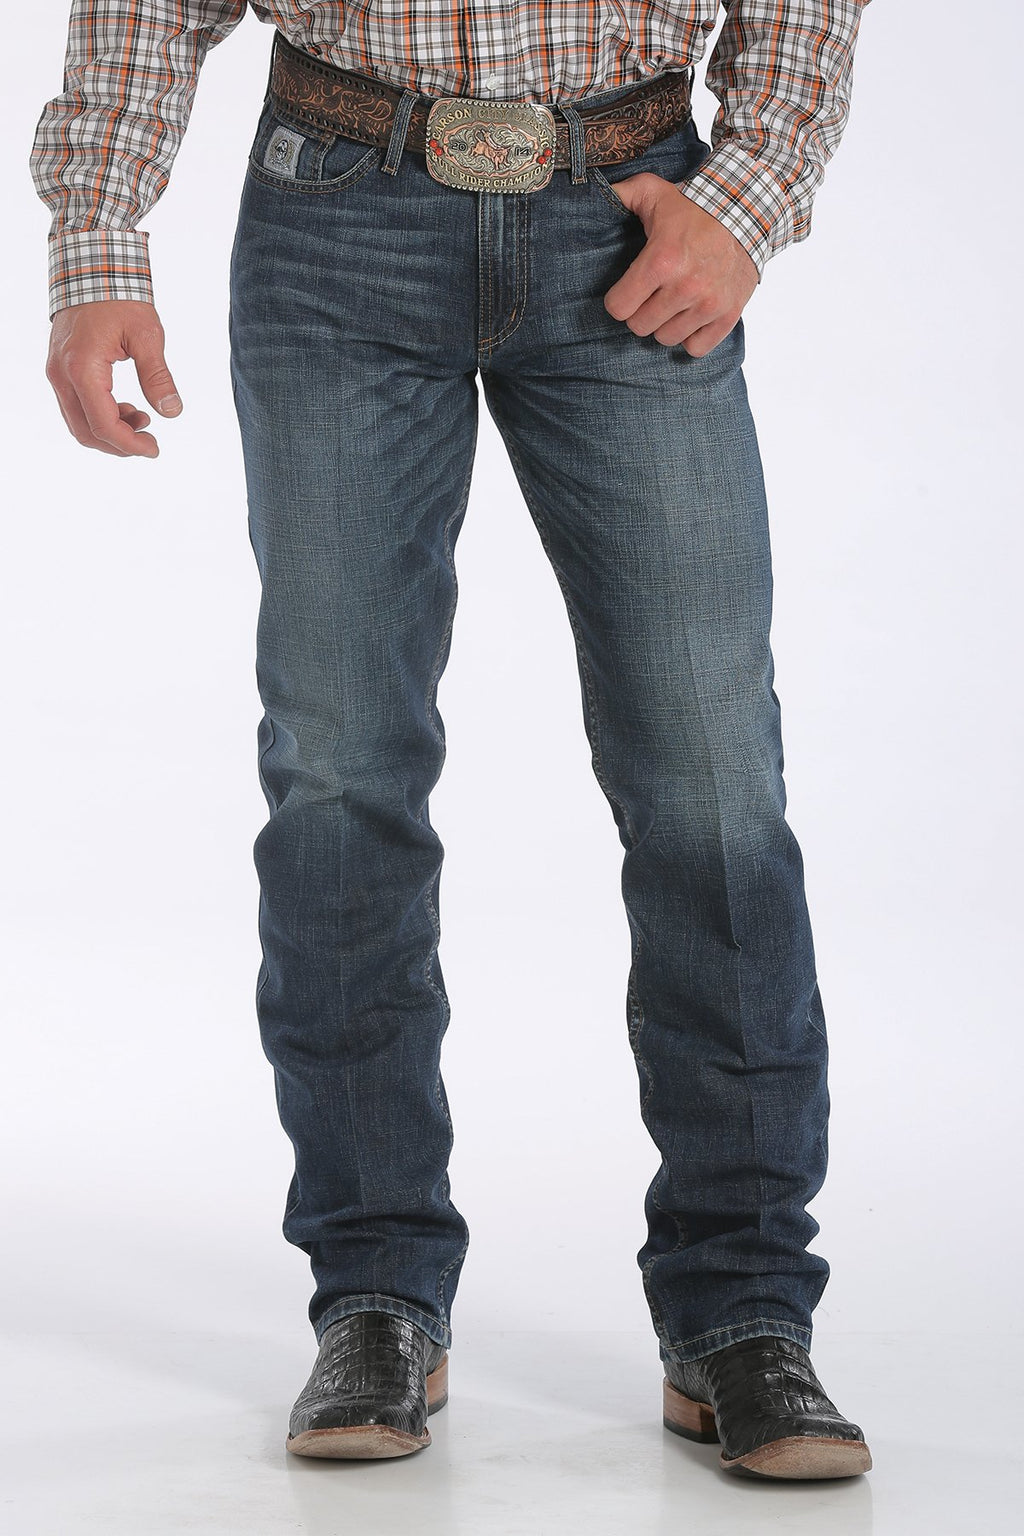 Men's Silver Label Dark Stone Wash Cinch Jeans